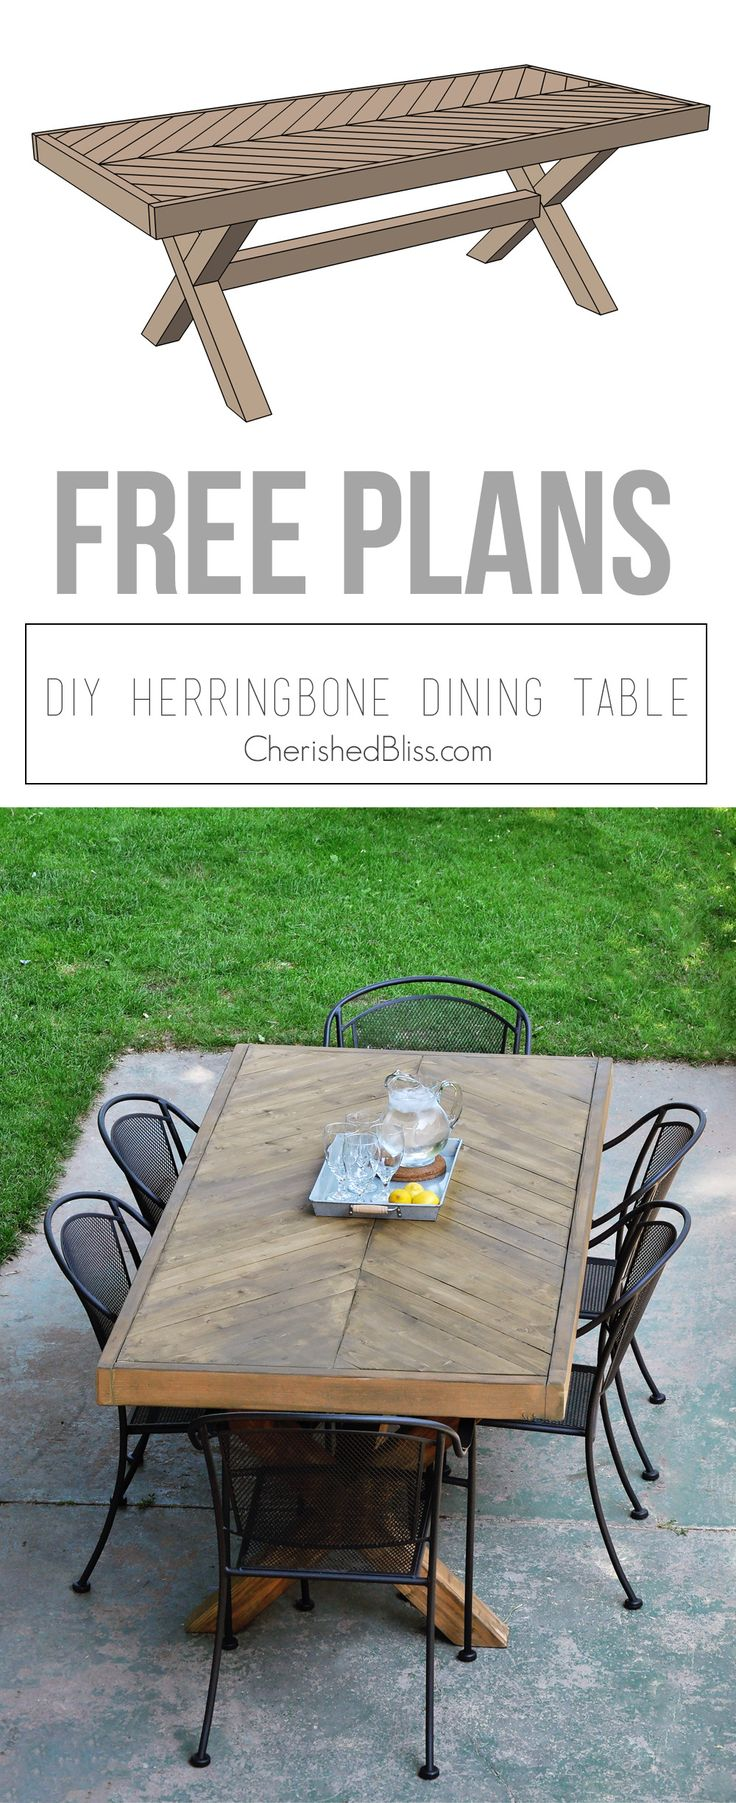 Outdoor table top ideas - Build This Diy Outdoor Table Featuring A Herringbone Top And X Brace Legs Would Also